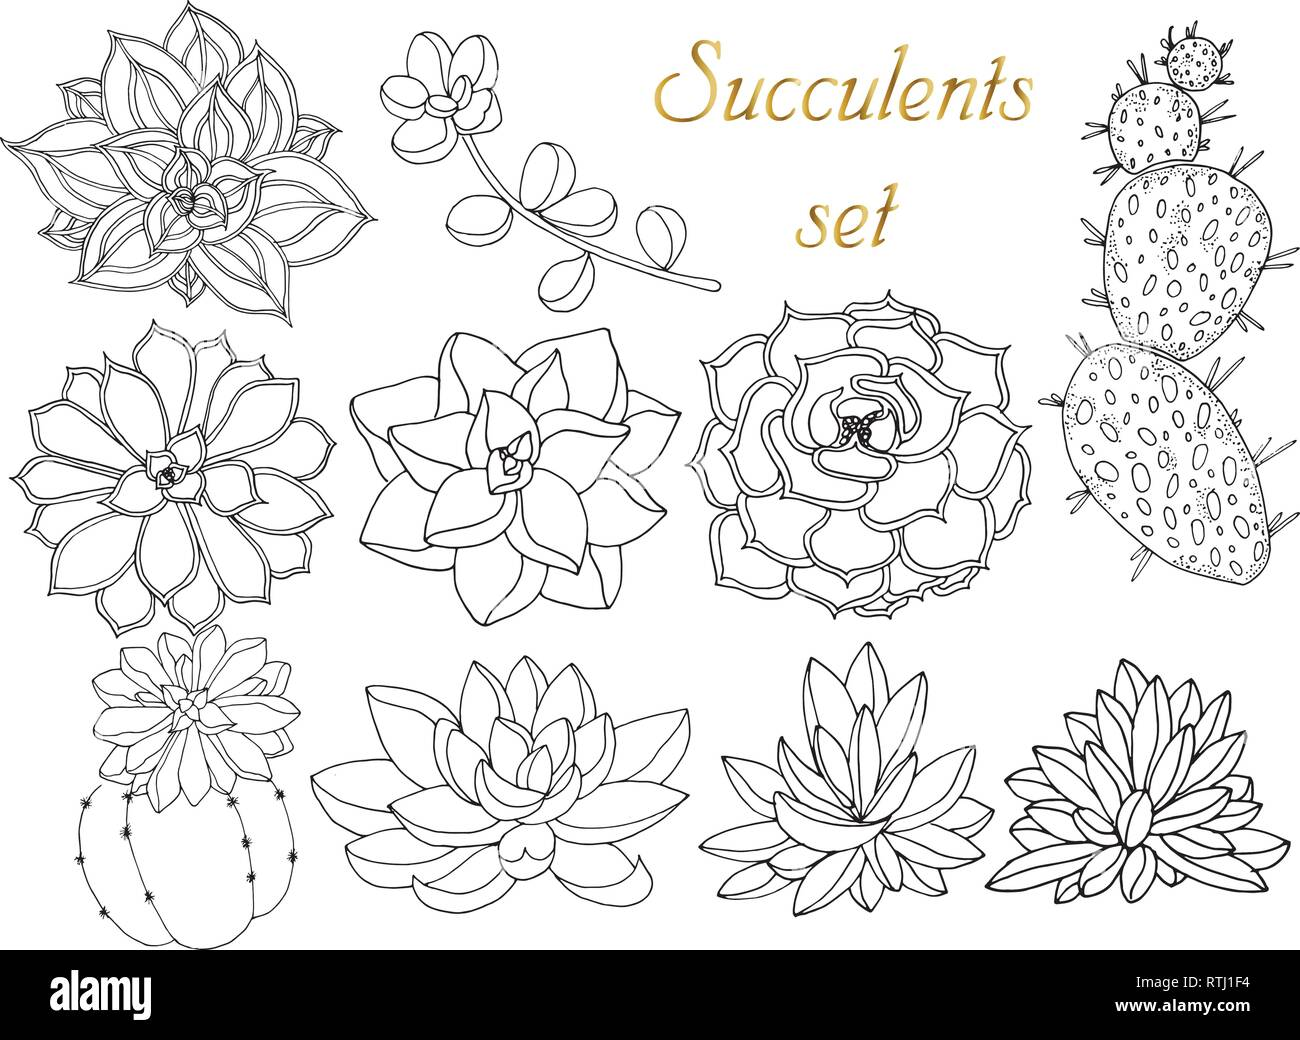 Doodle floral background in vector with doodles black and white coloring page of succulents set of tropical plants